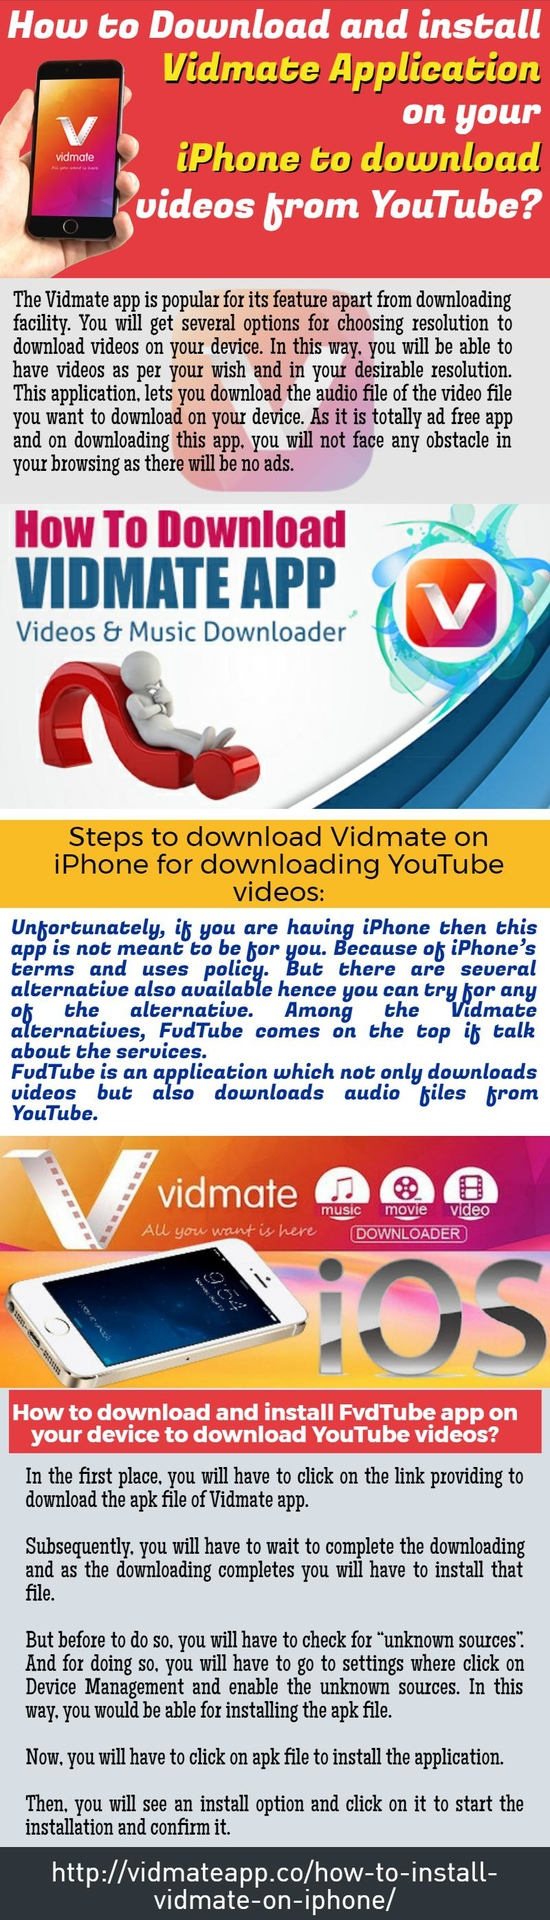 How To Download And Install Vidmate Application On Your iPhone To